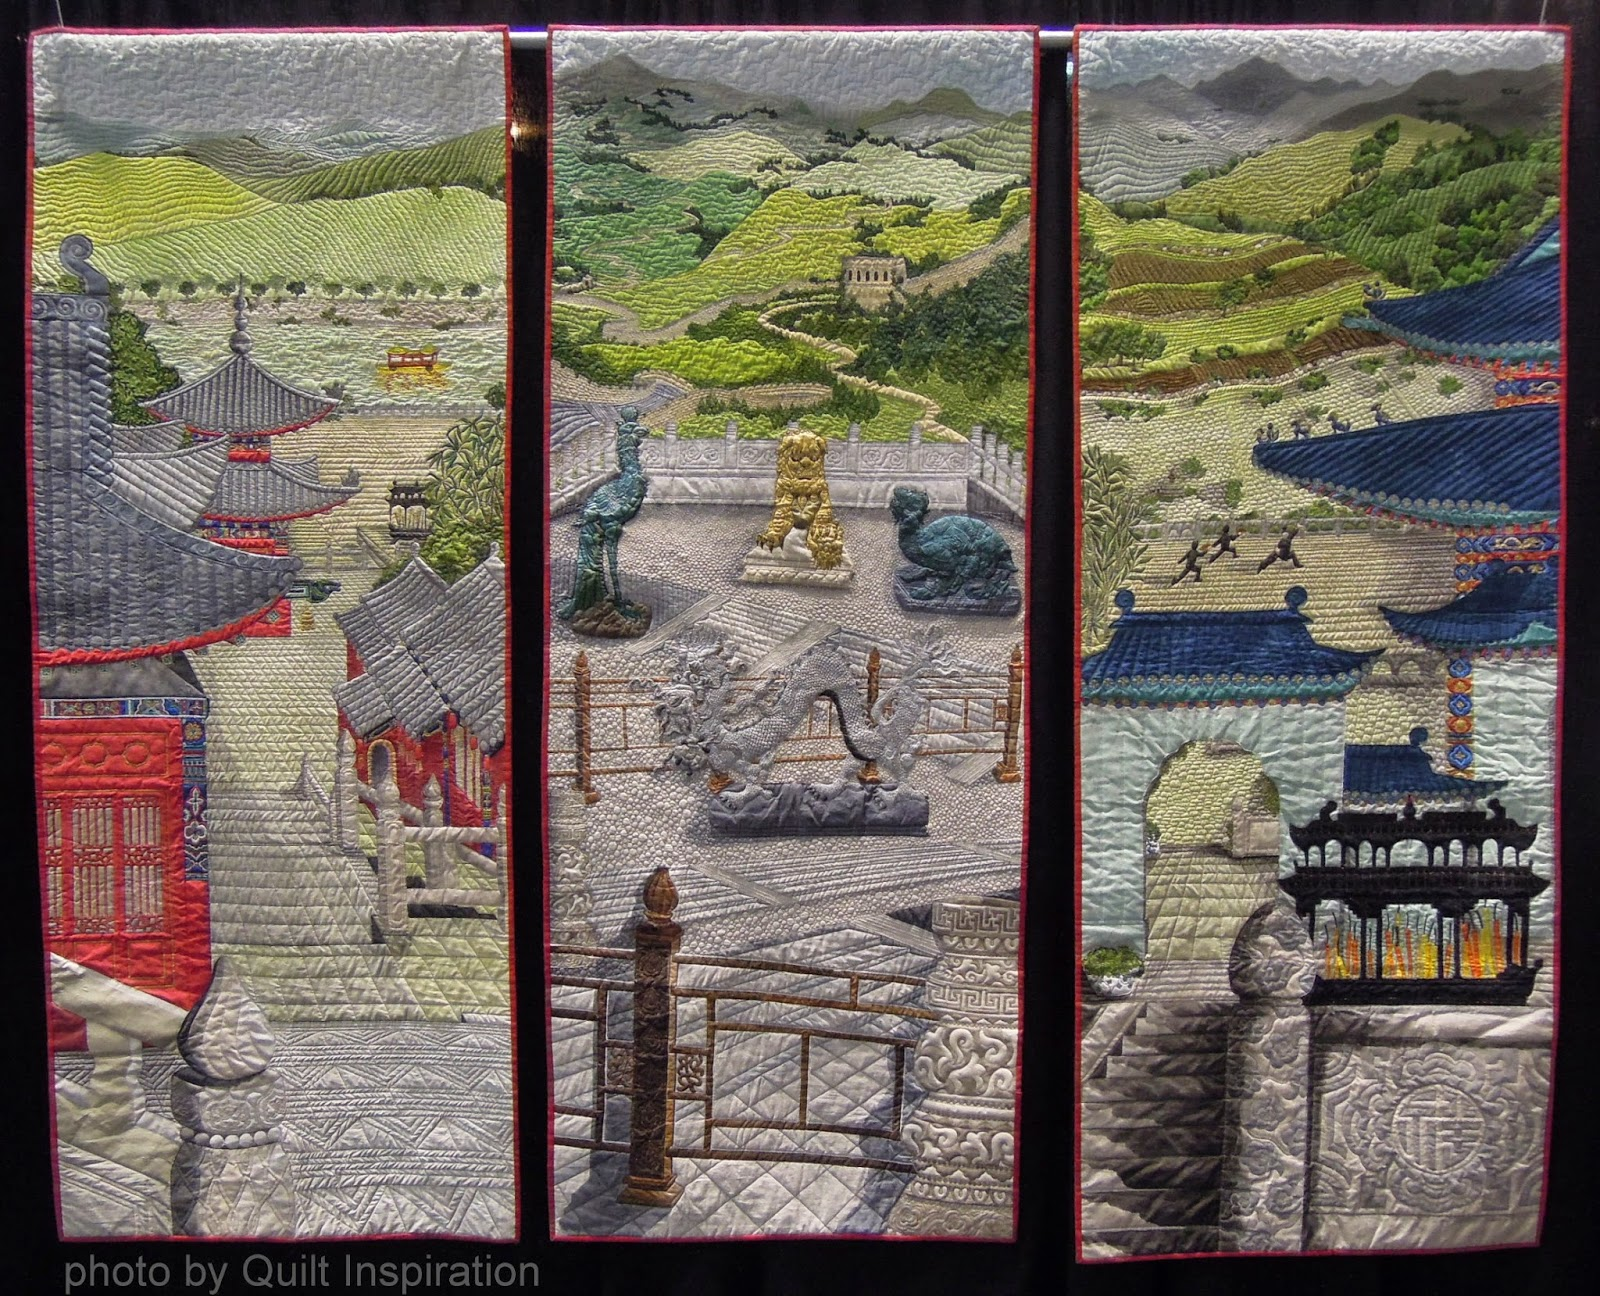 Quilt inspiration october 2014 best of the 2014 pacific international quilt festival day 2 gumiabroncs Gallery